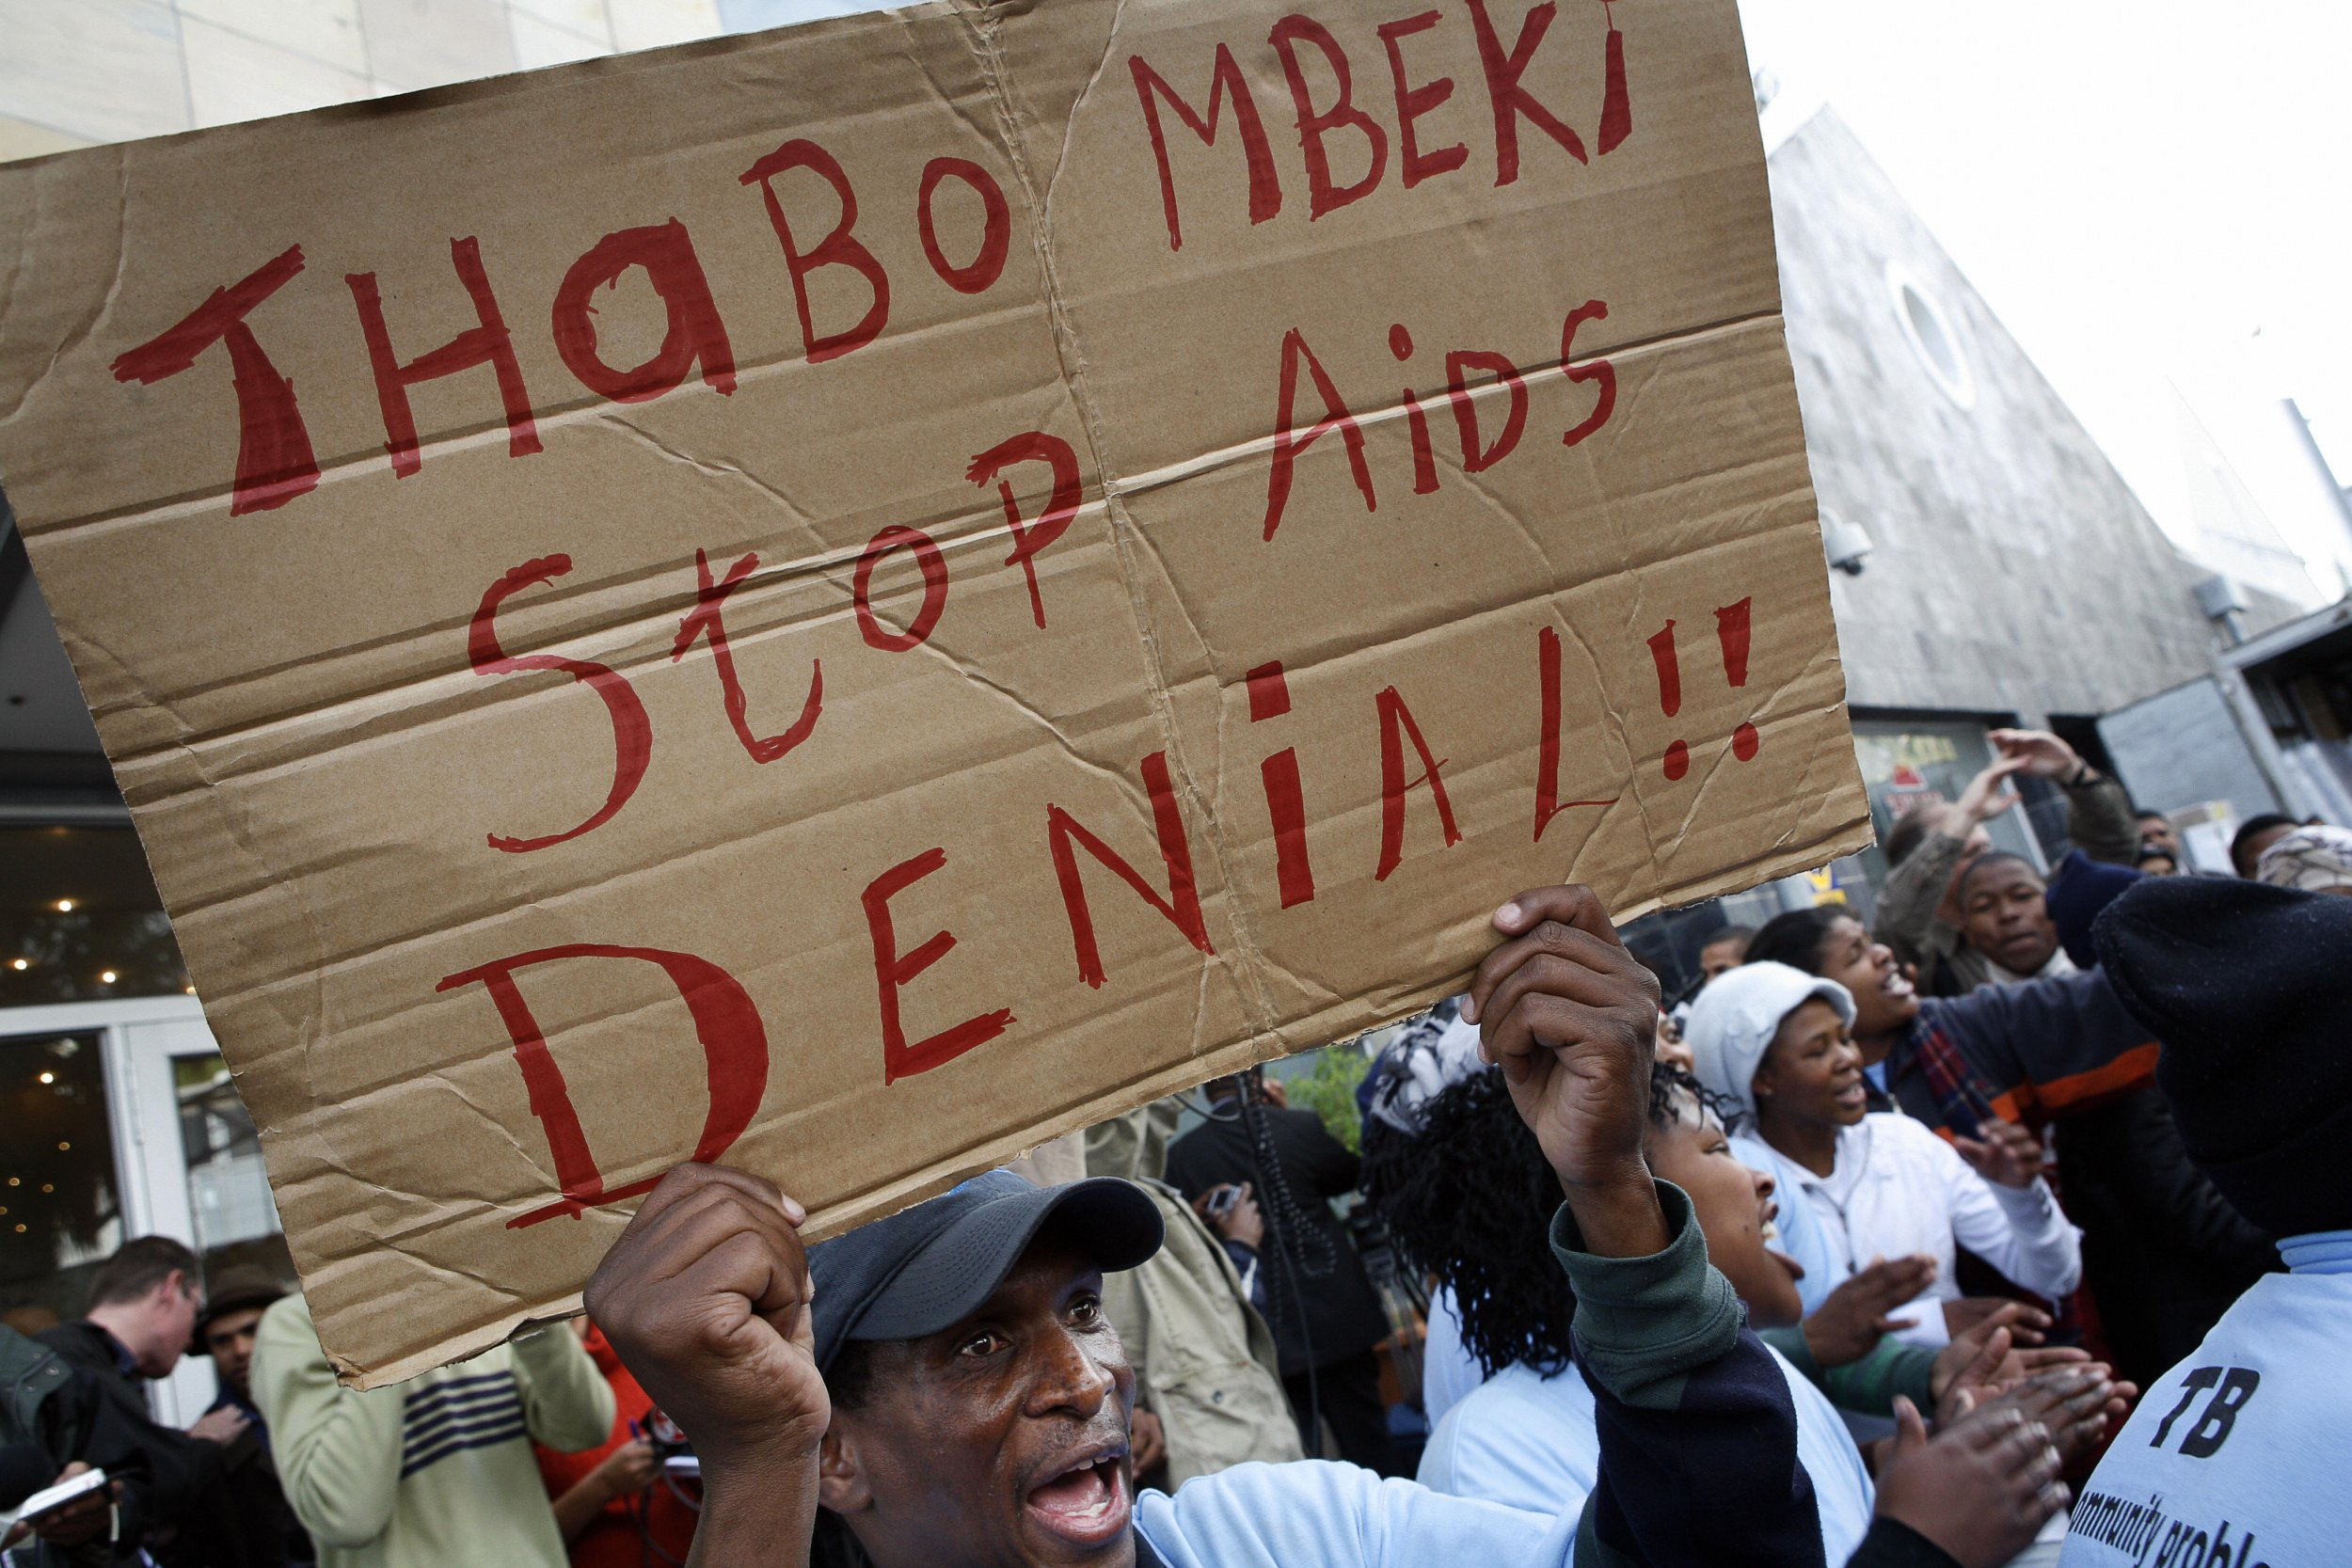 Why Mbeki's HIV VIews Have No Place in South Africa